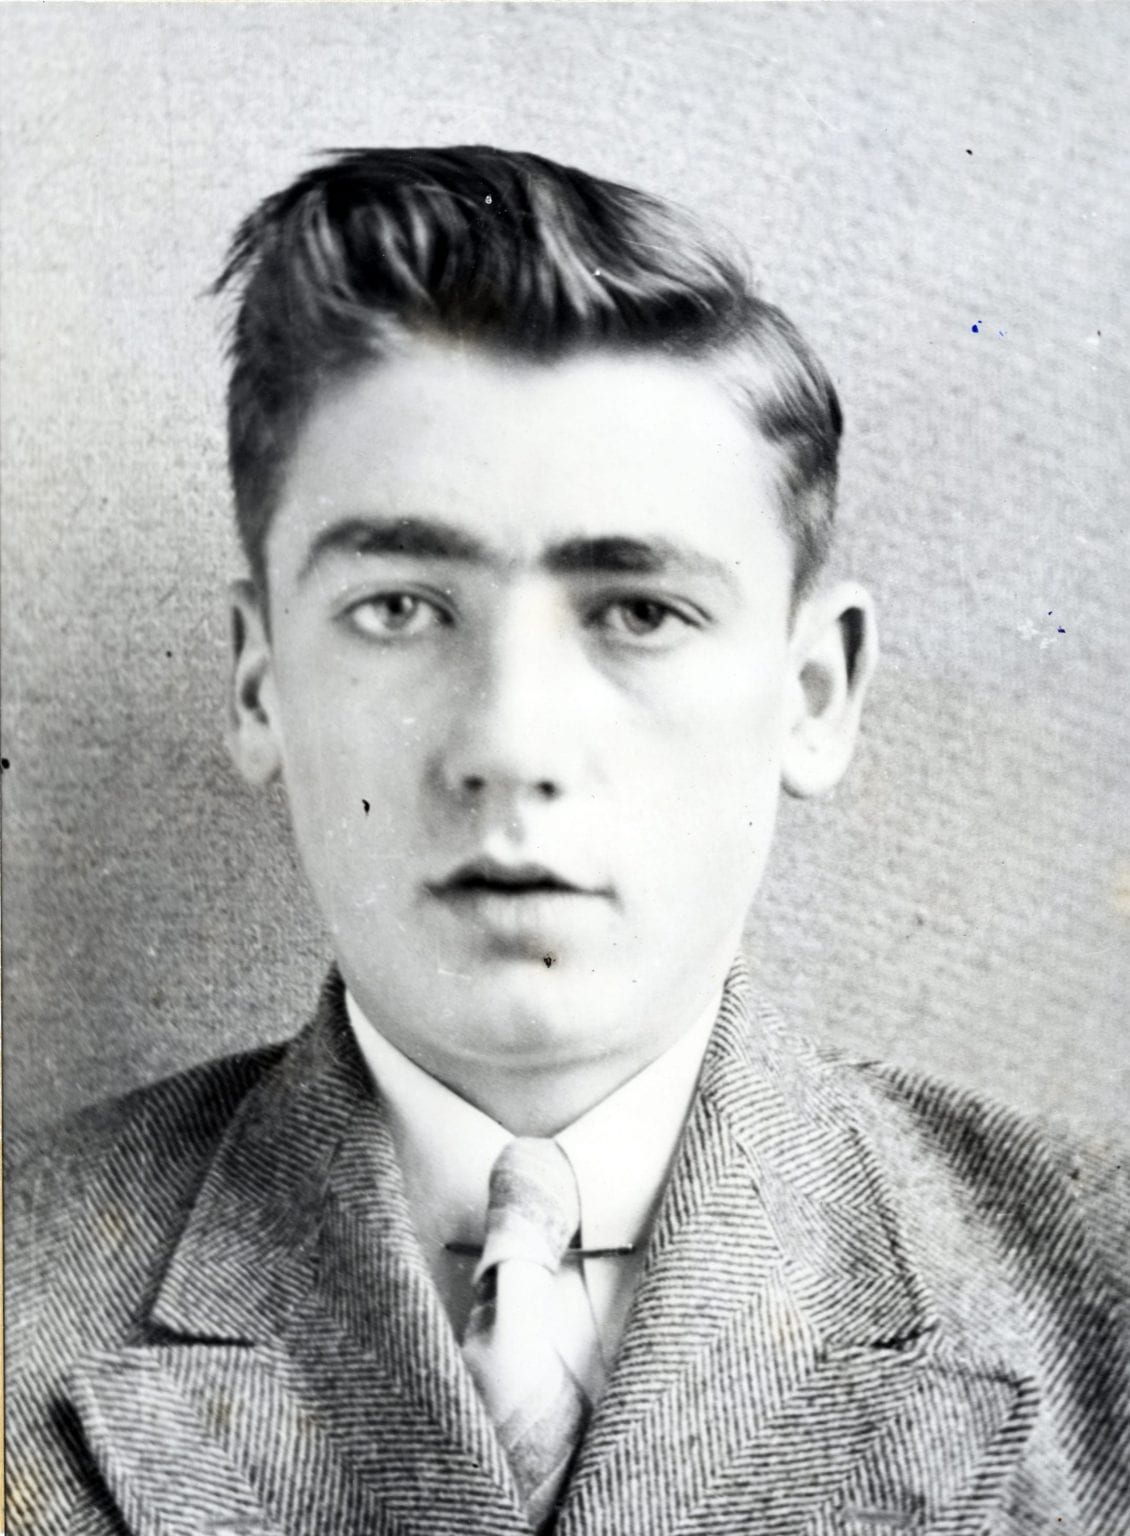 Photo of Robert Lytle dressed in a suit and tie.